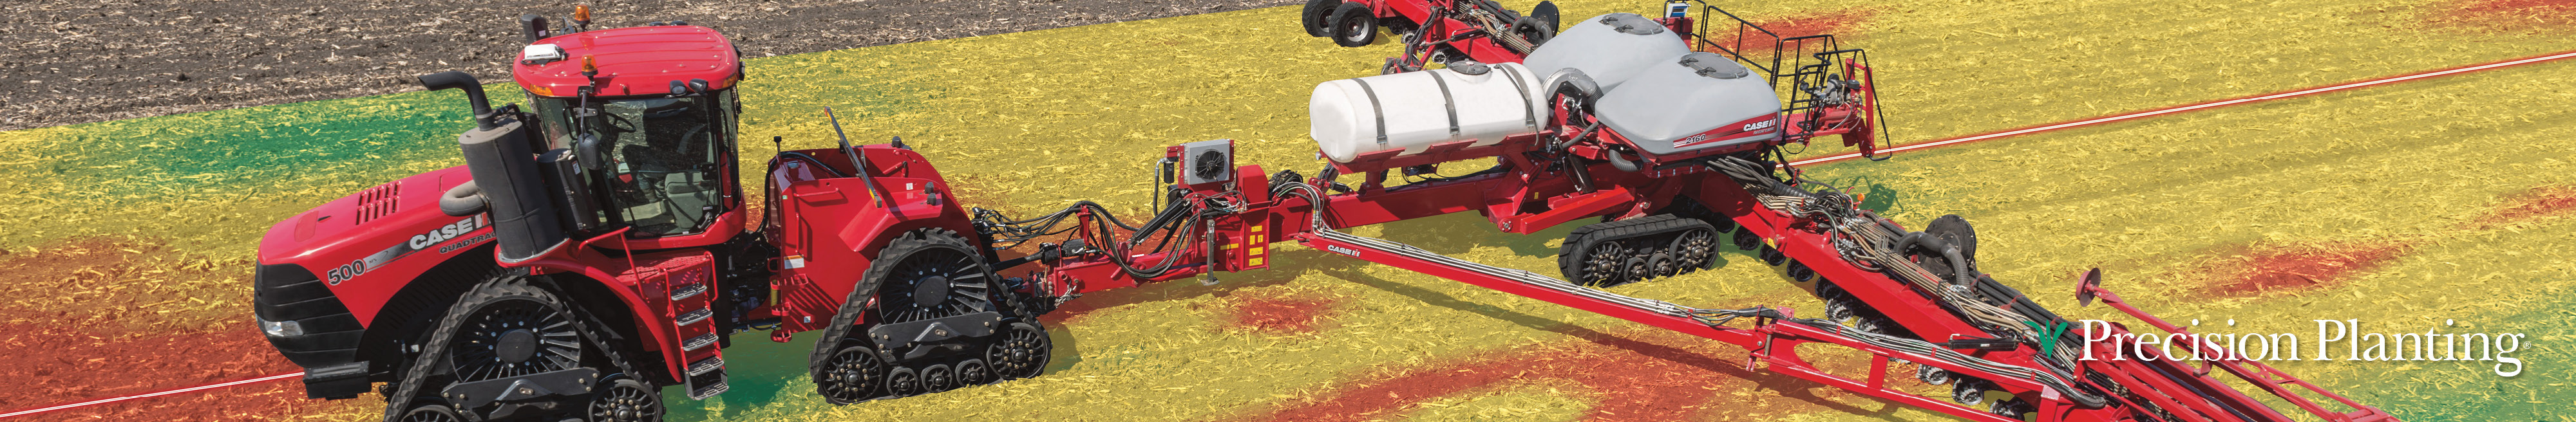 Case IH tractors with planters in field using Precision Planting technology